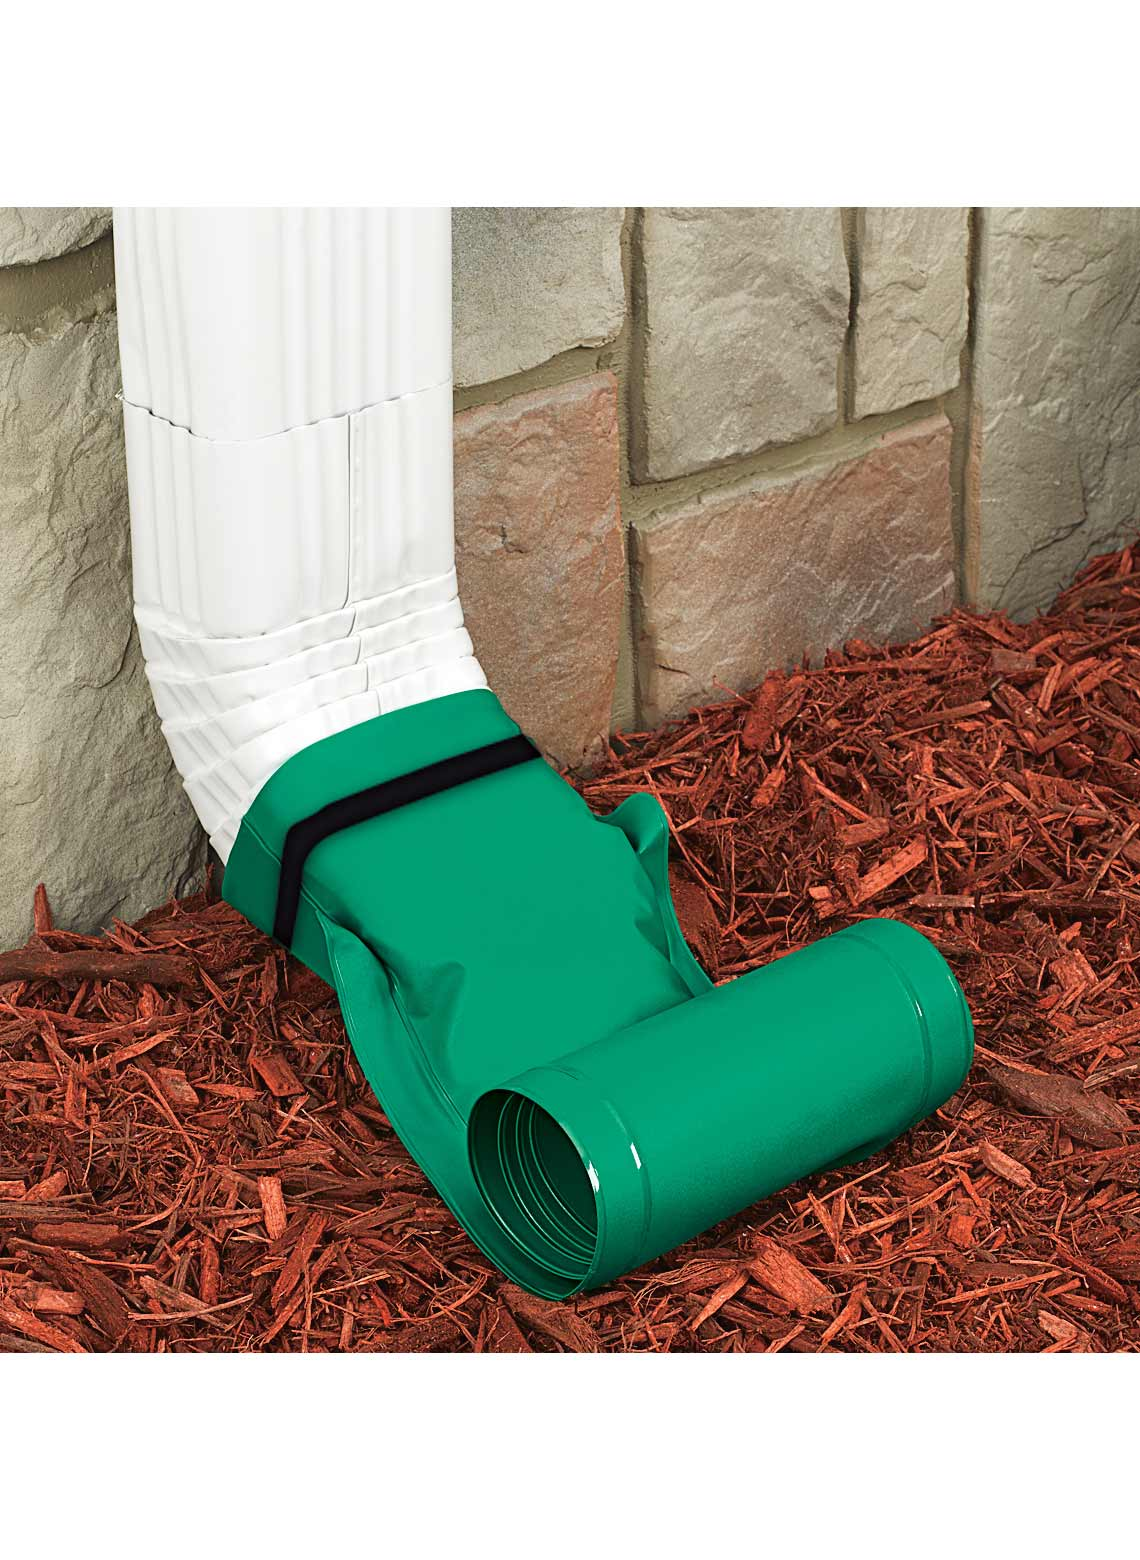 Downspout drain water disperser quotes for Downspout drain